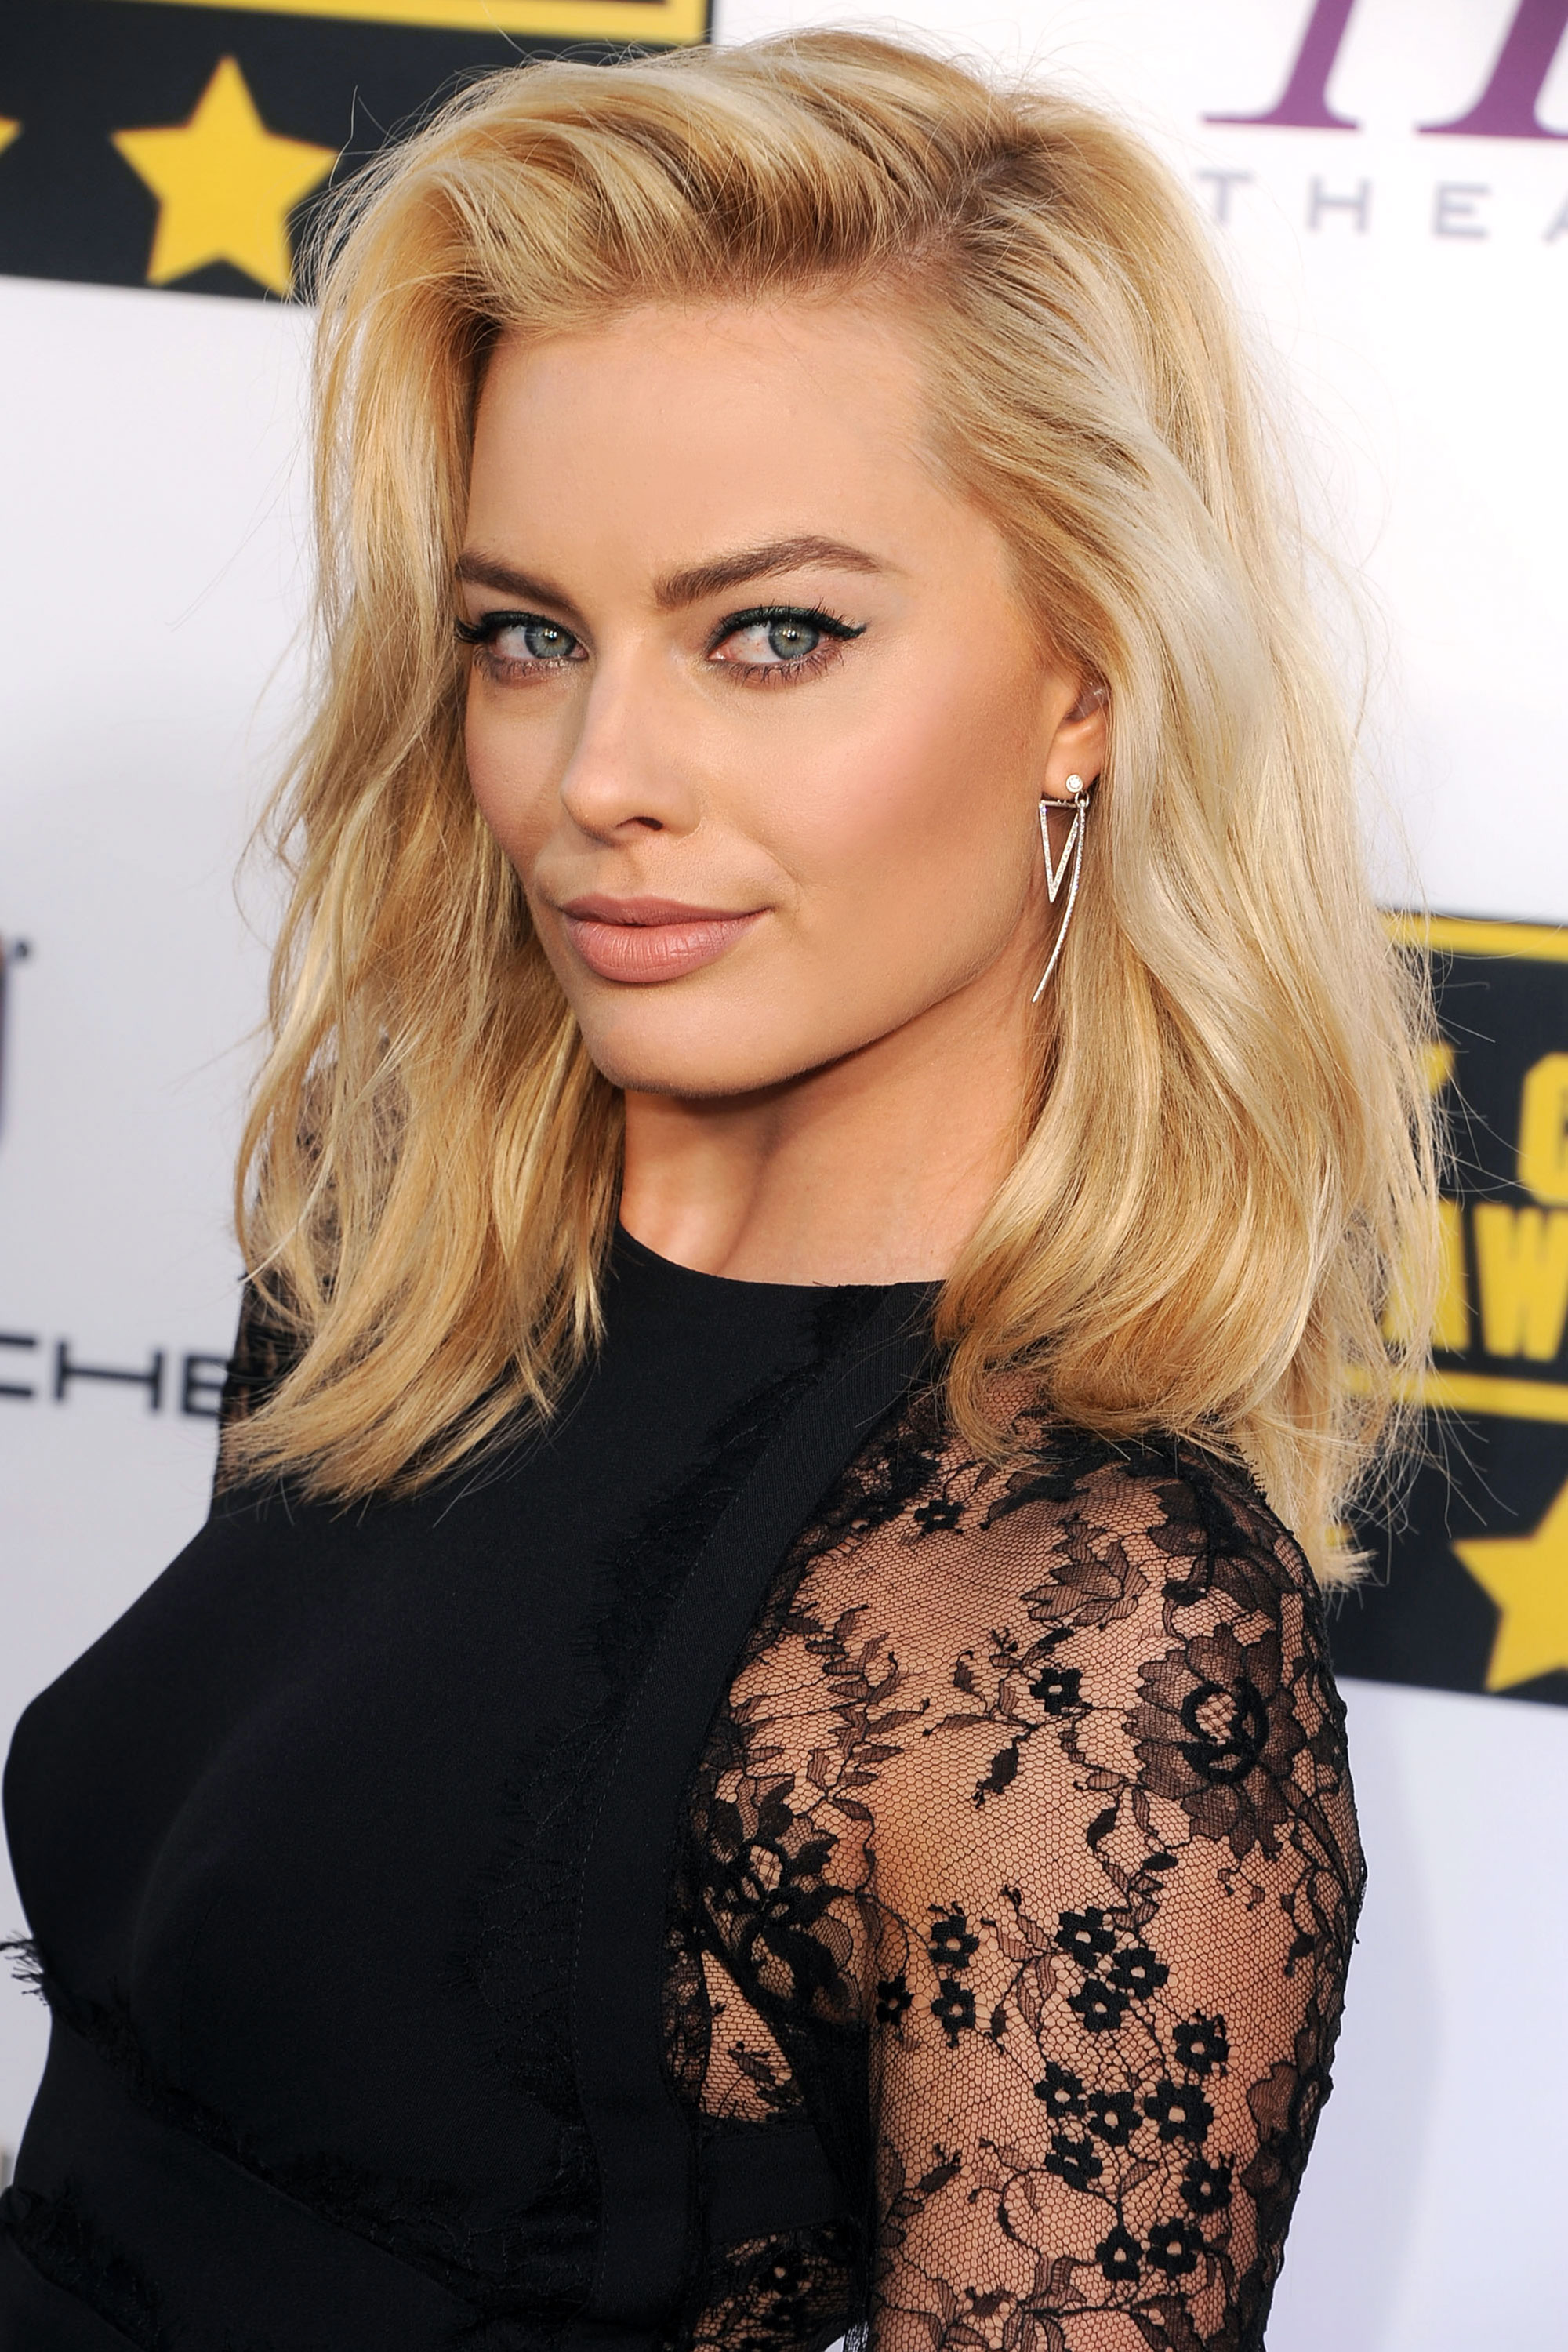 Marvelous 33 Best Medium Hairstyles Celebrities With Shoulder Length Haircuts Hairstyles For Women Draintrainus